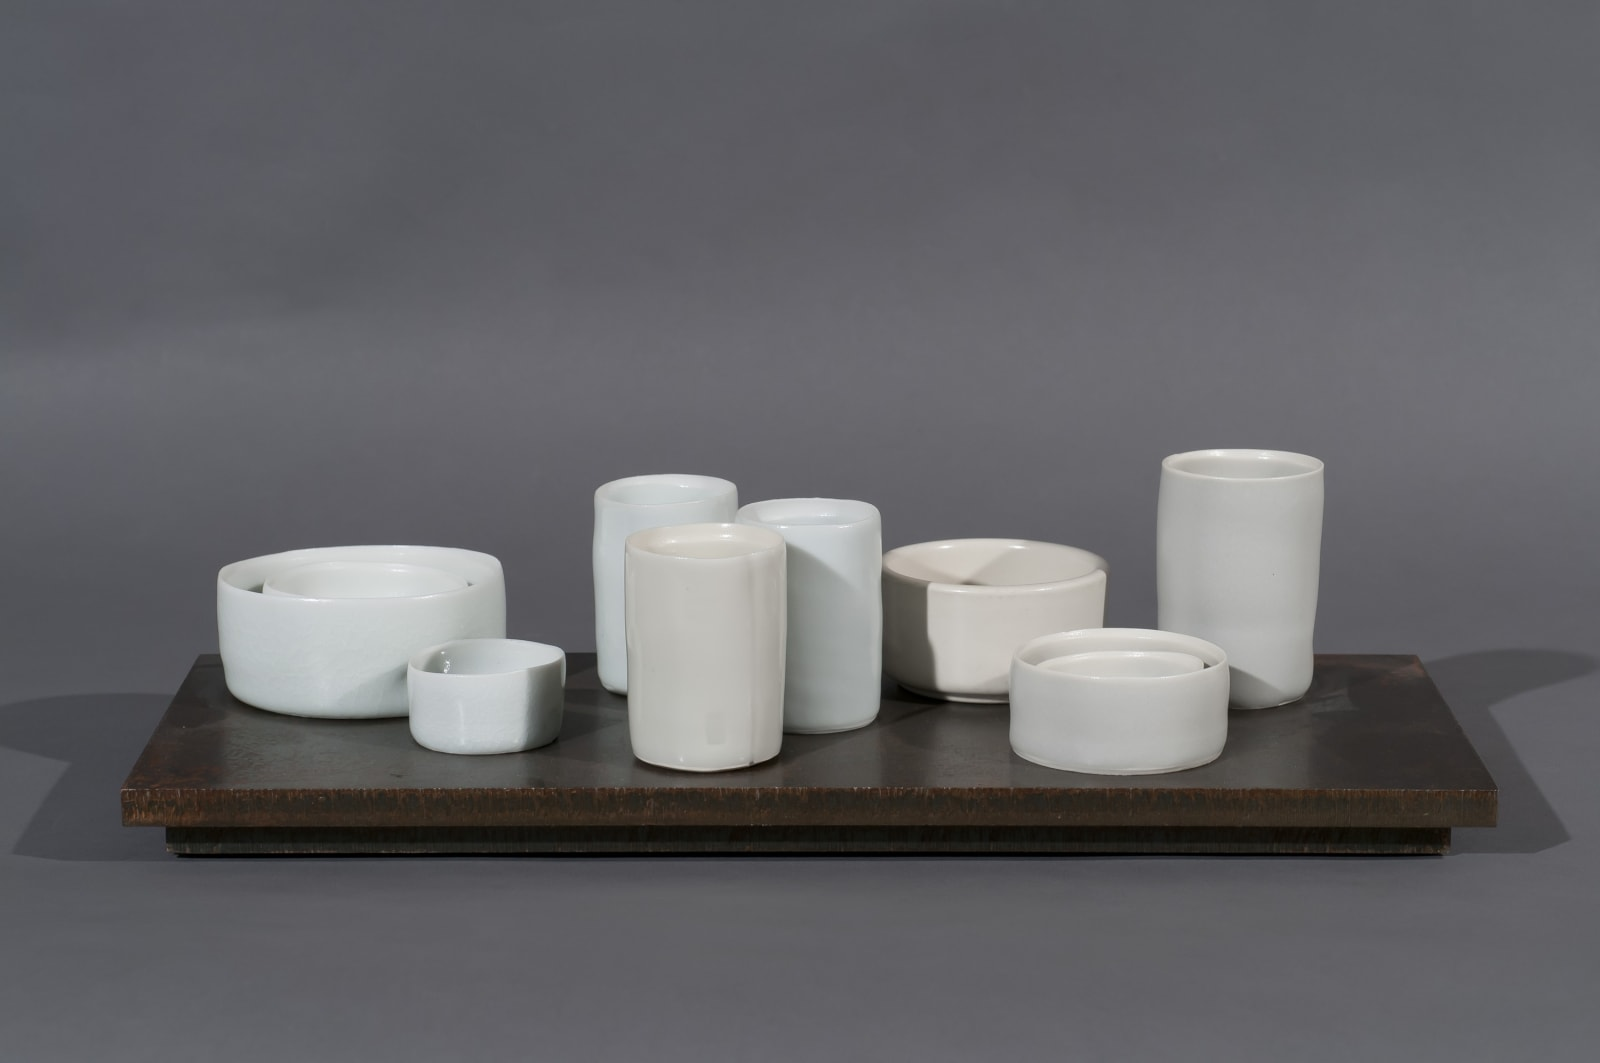 Edmund DE WAAL (b.1964) 9 circles II, 2011 Edition 2 of 10 A series of corten steel slabs each with 9 thrown porcelain vessels in celadon, grey and white glazes 5 7/8 x 13 ¾ x ½ inches / 15 x 35 x 2 cm